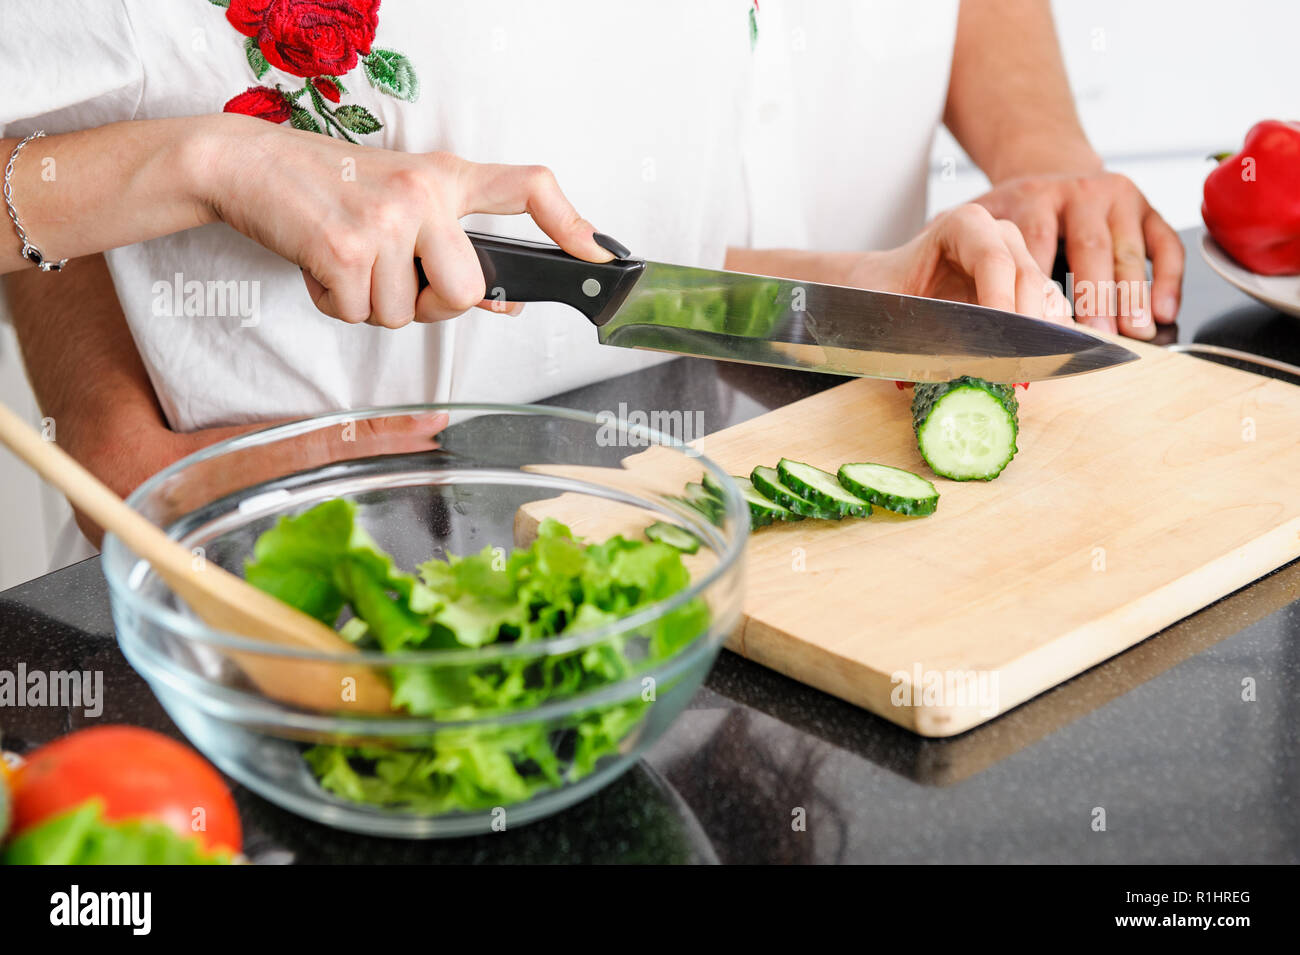 young man and woman hands cooking healthy vegetarian food from fresh vegetables - Stock Image